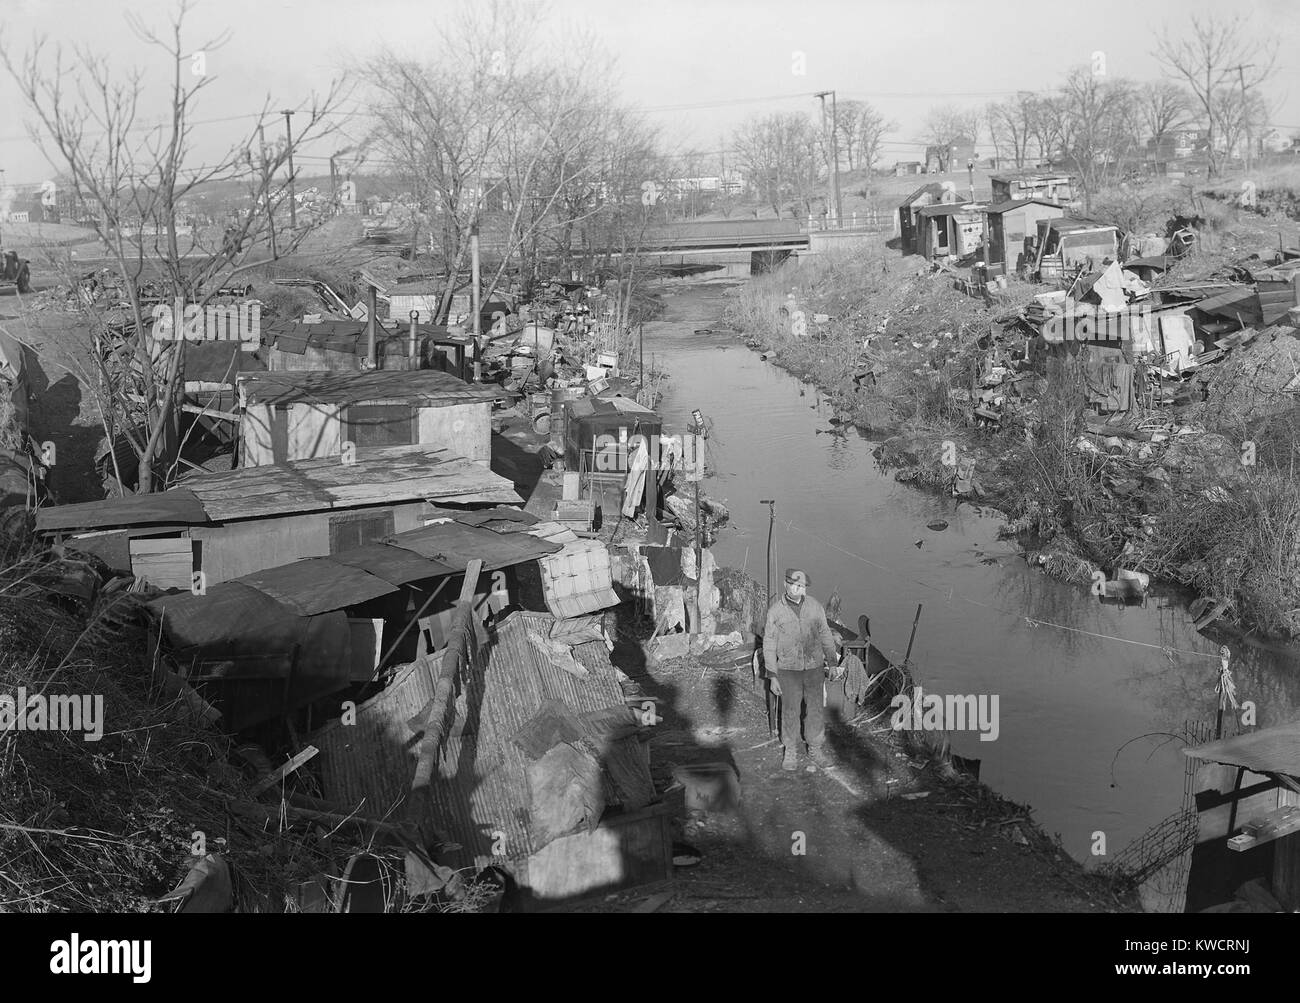 Bachelor shacks in outskirts of Paterson, N.J., 1936. Homes of about 25 men, some of them unemployed silk mill workers. - Stock Image